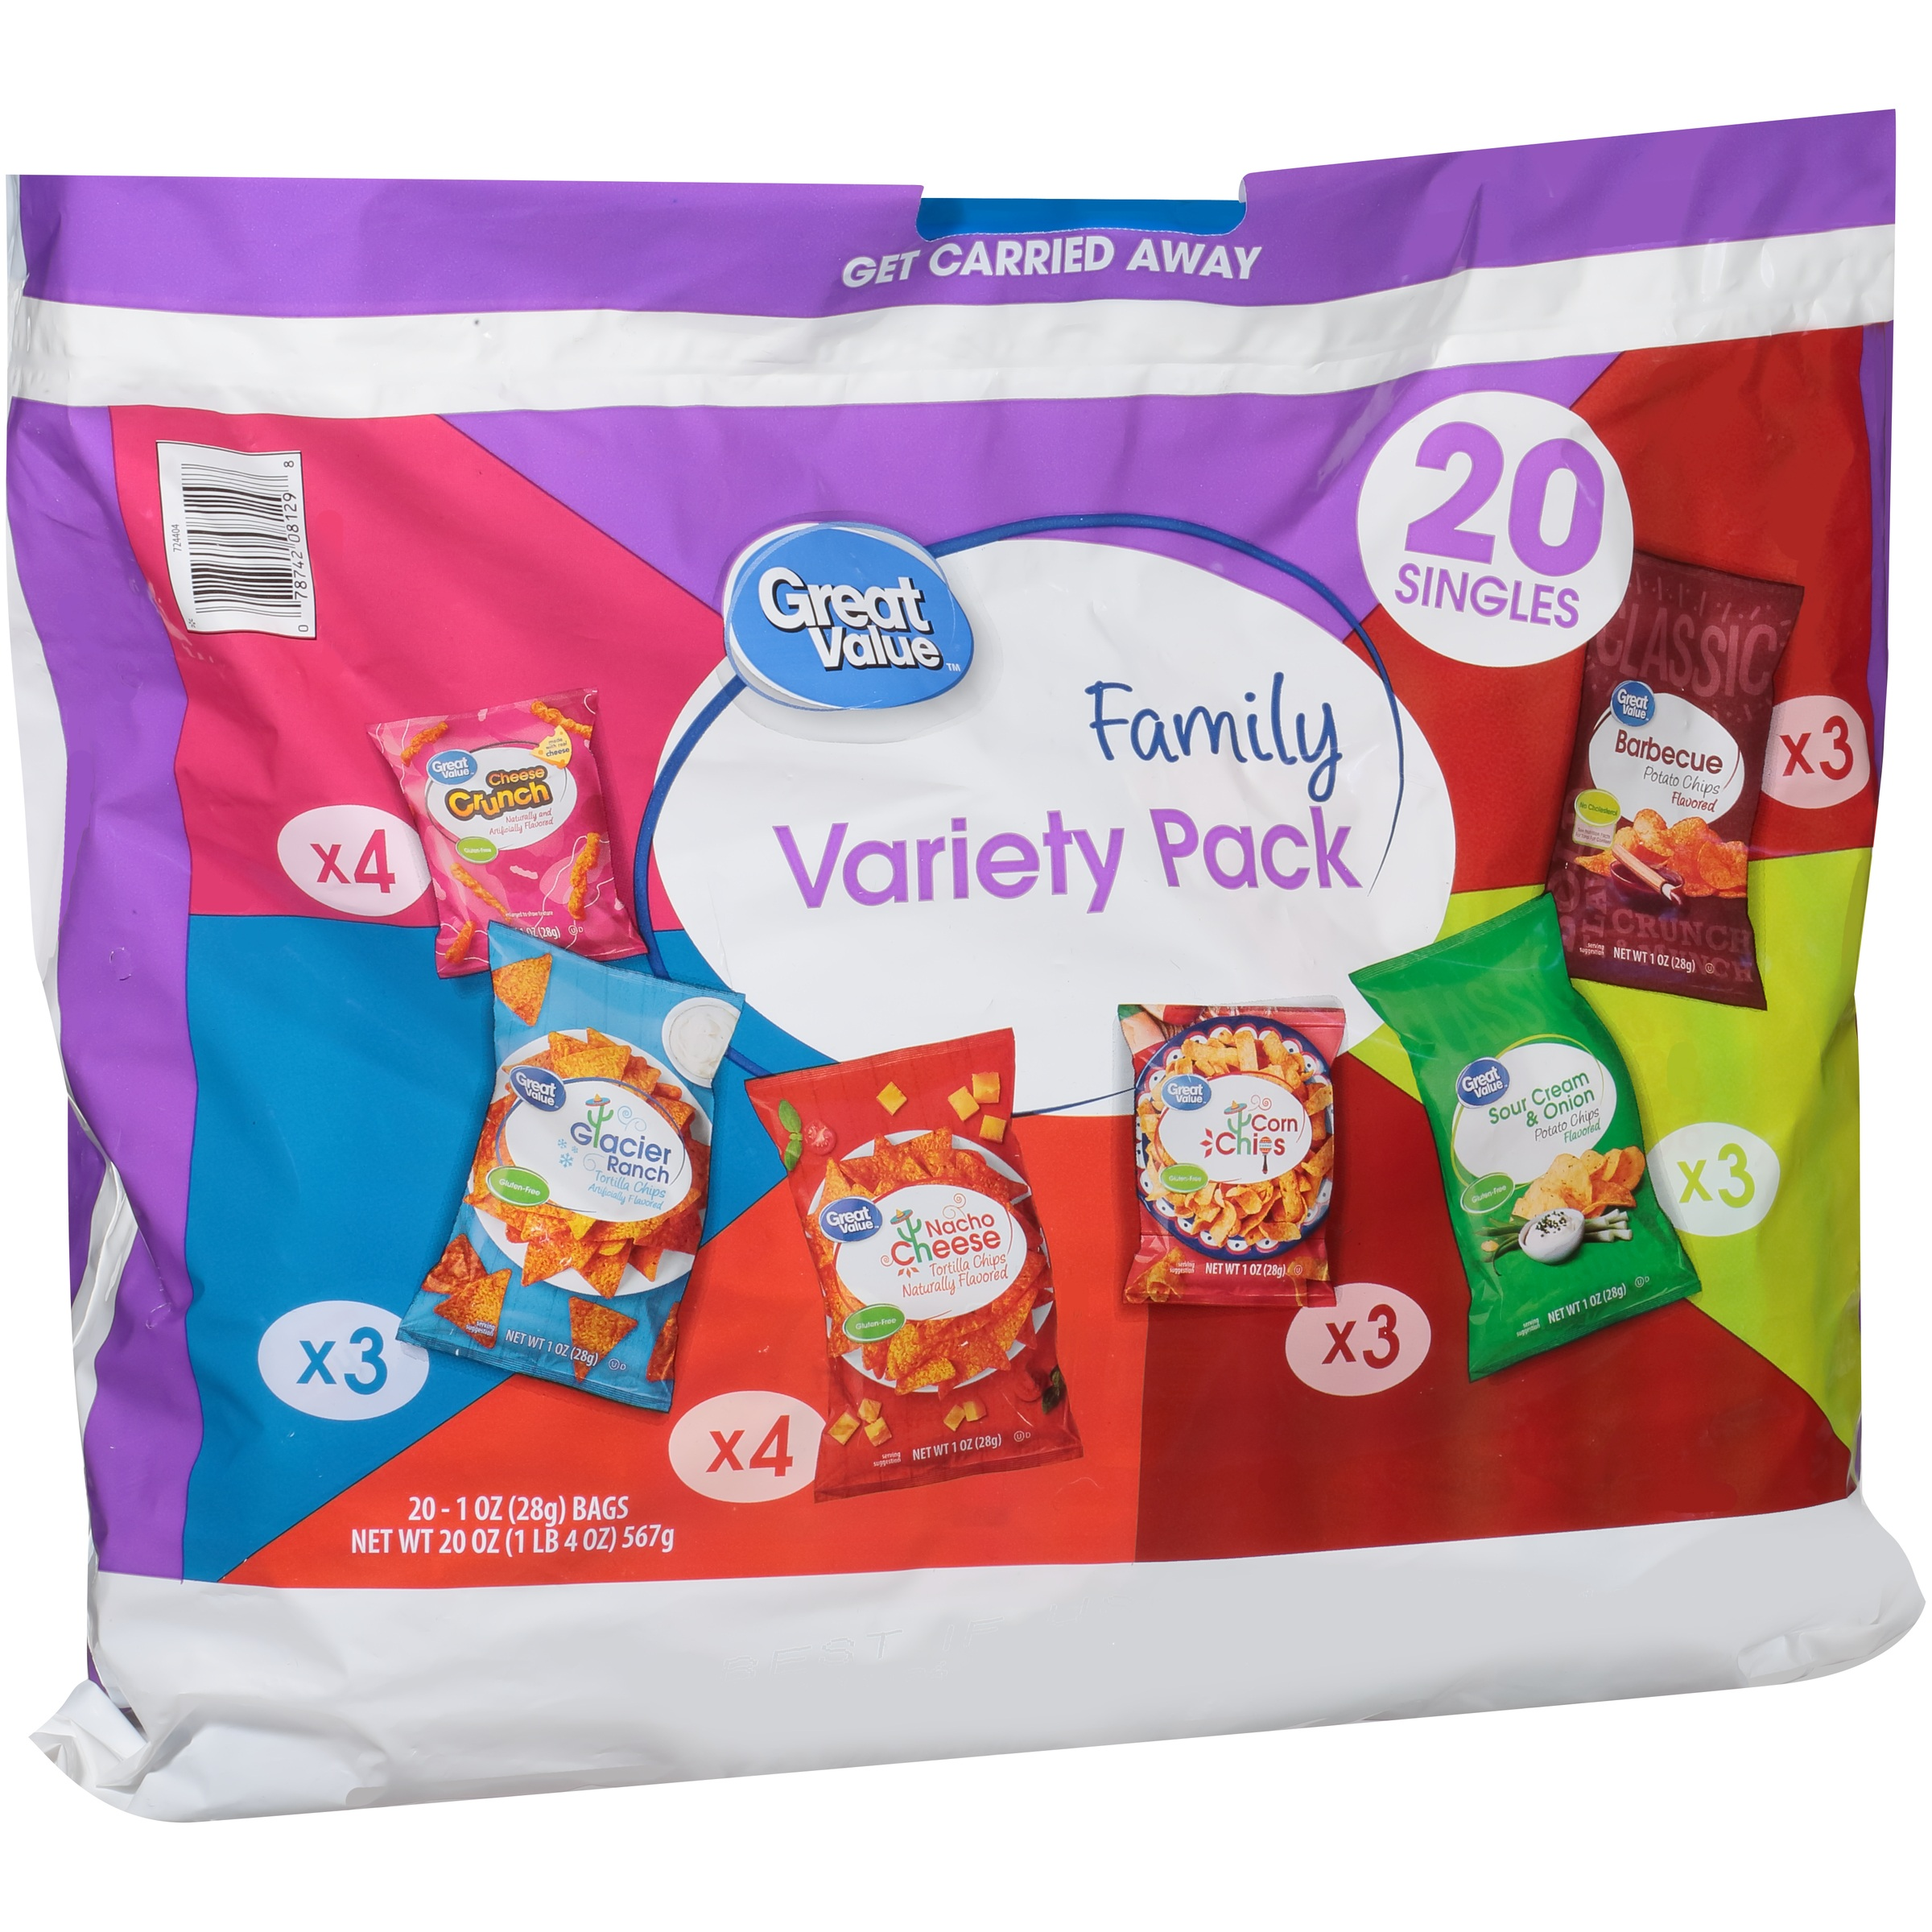 Great Value Family Variety Pack Snacks, Tortilla, Corn, Potato Chip Variety, 20 Count